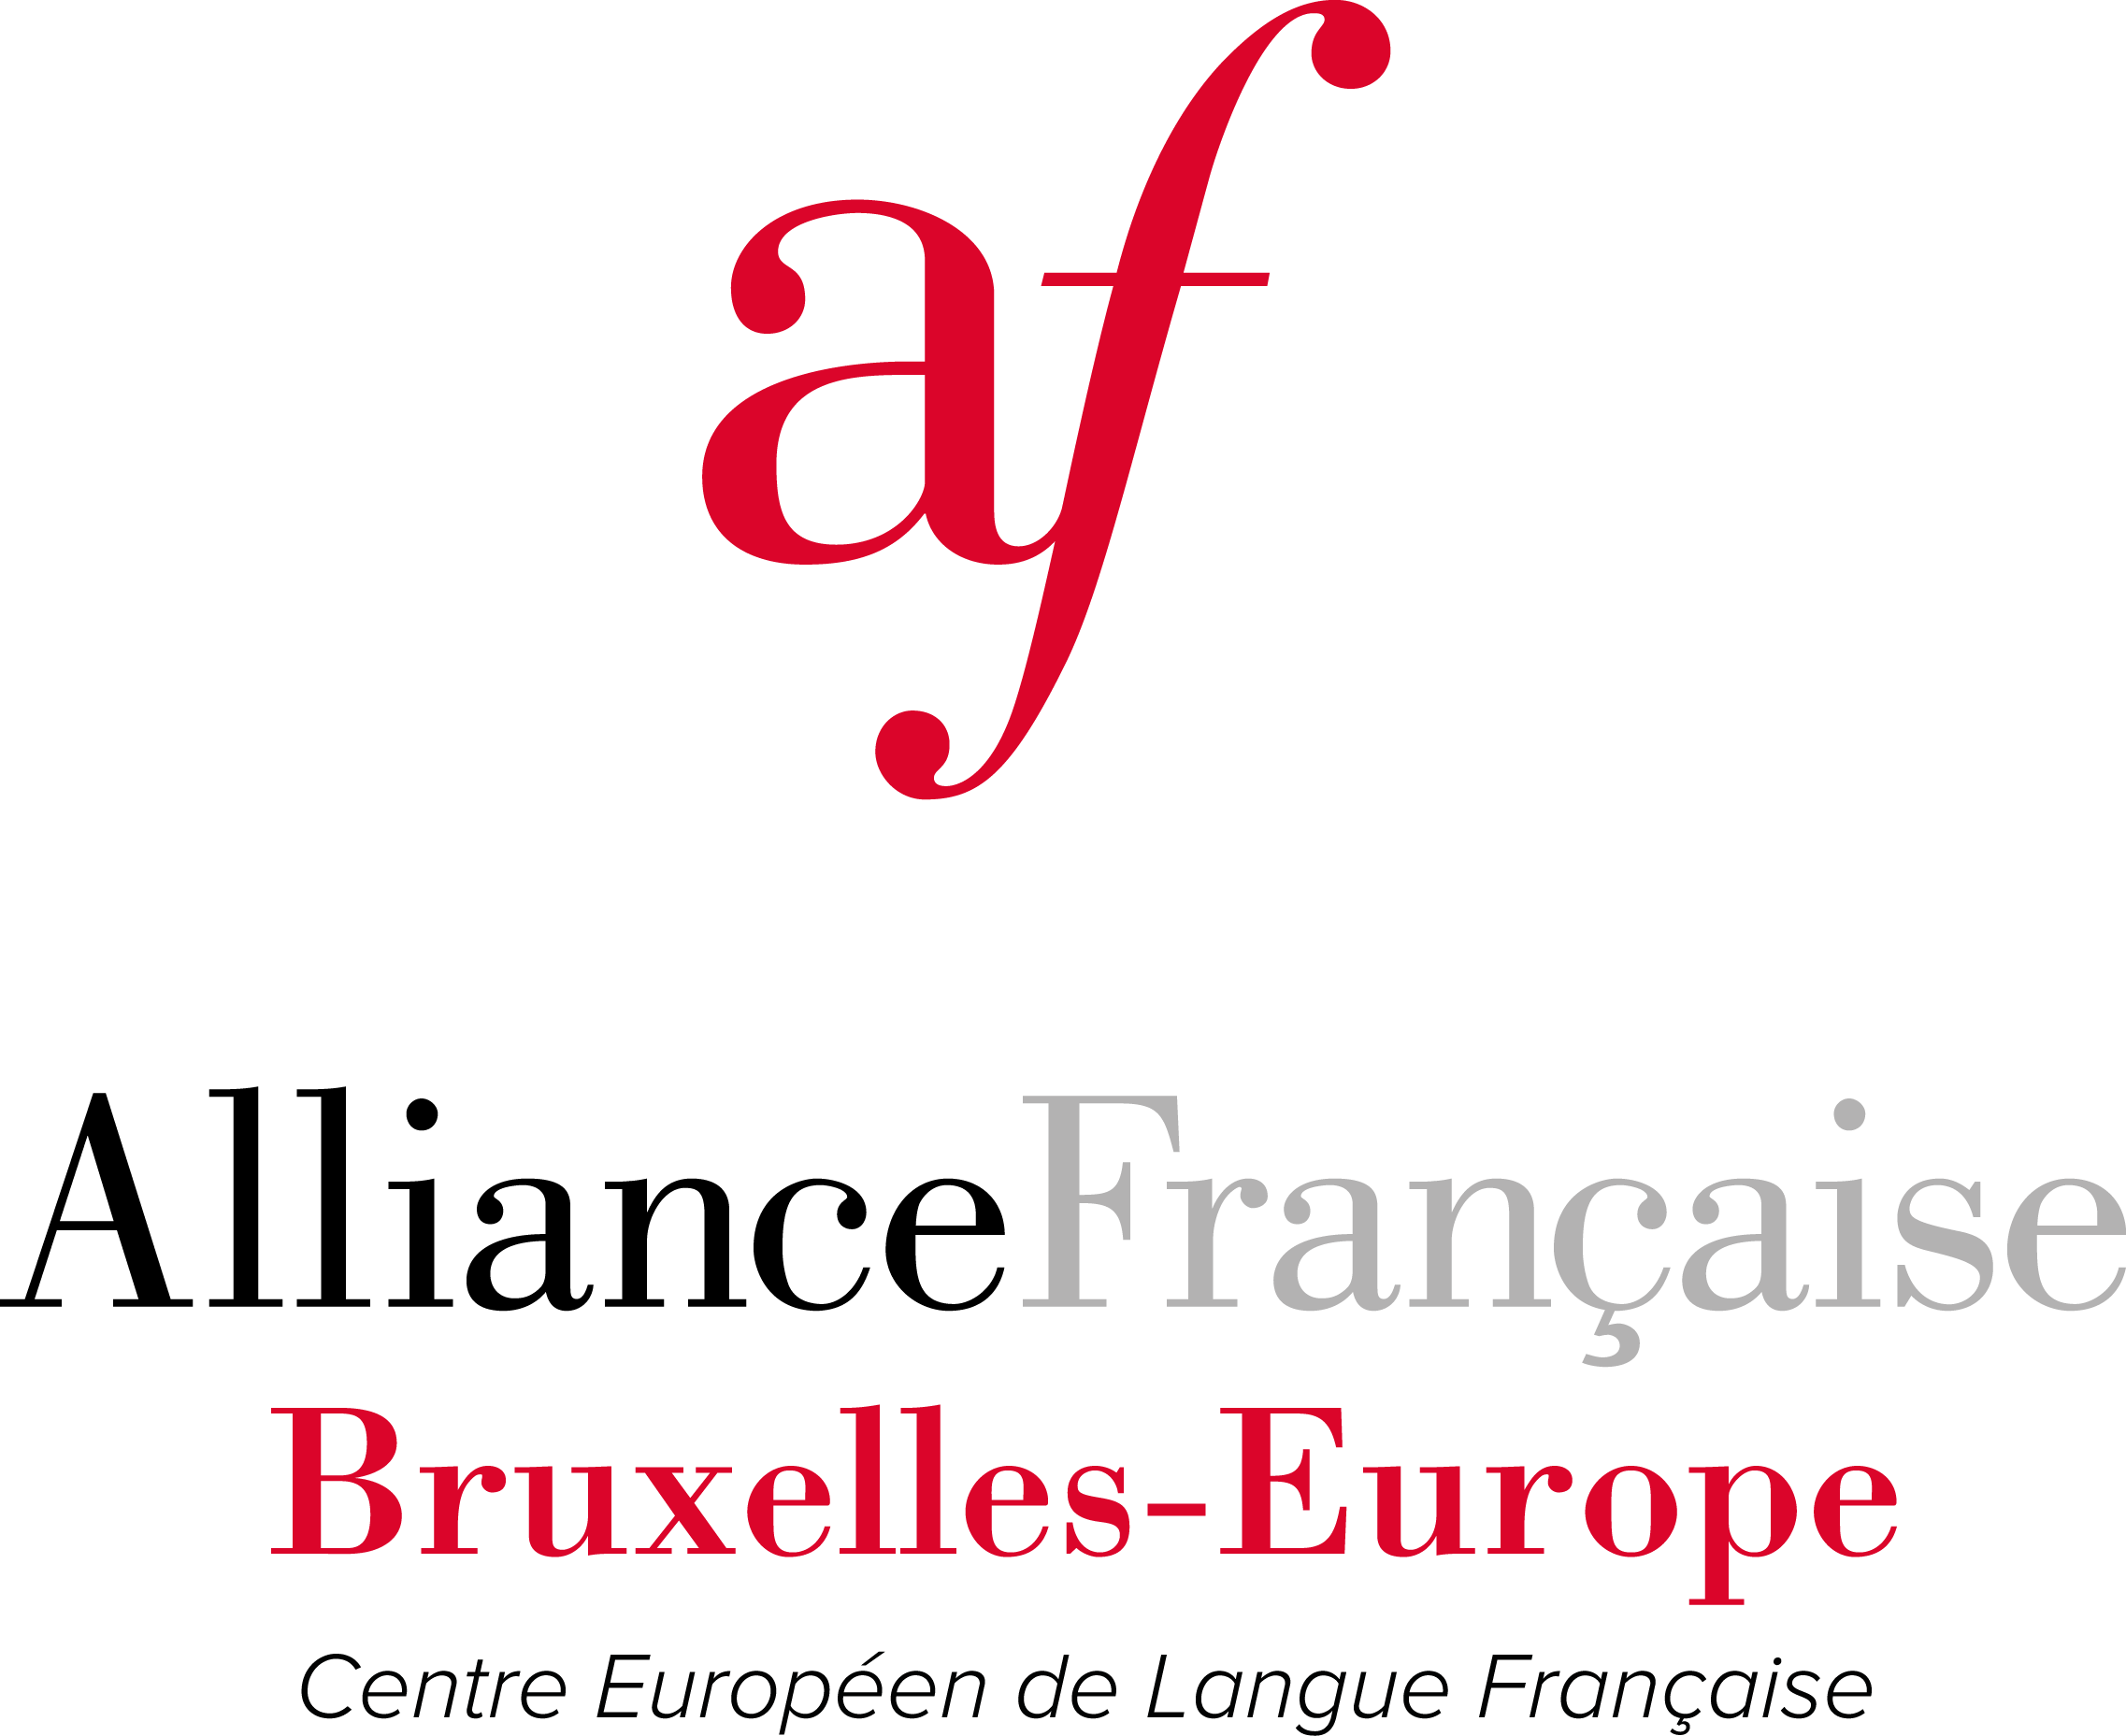 Alliance française de Bruxelles-Europe: master French for your career